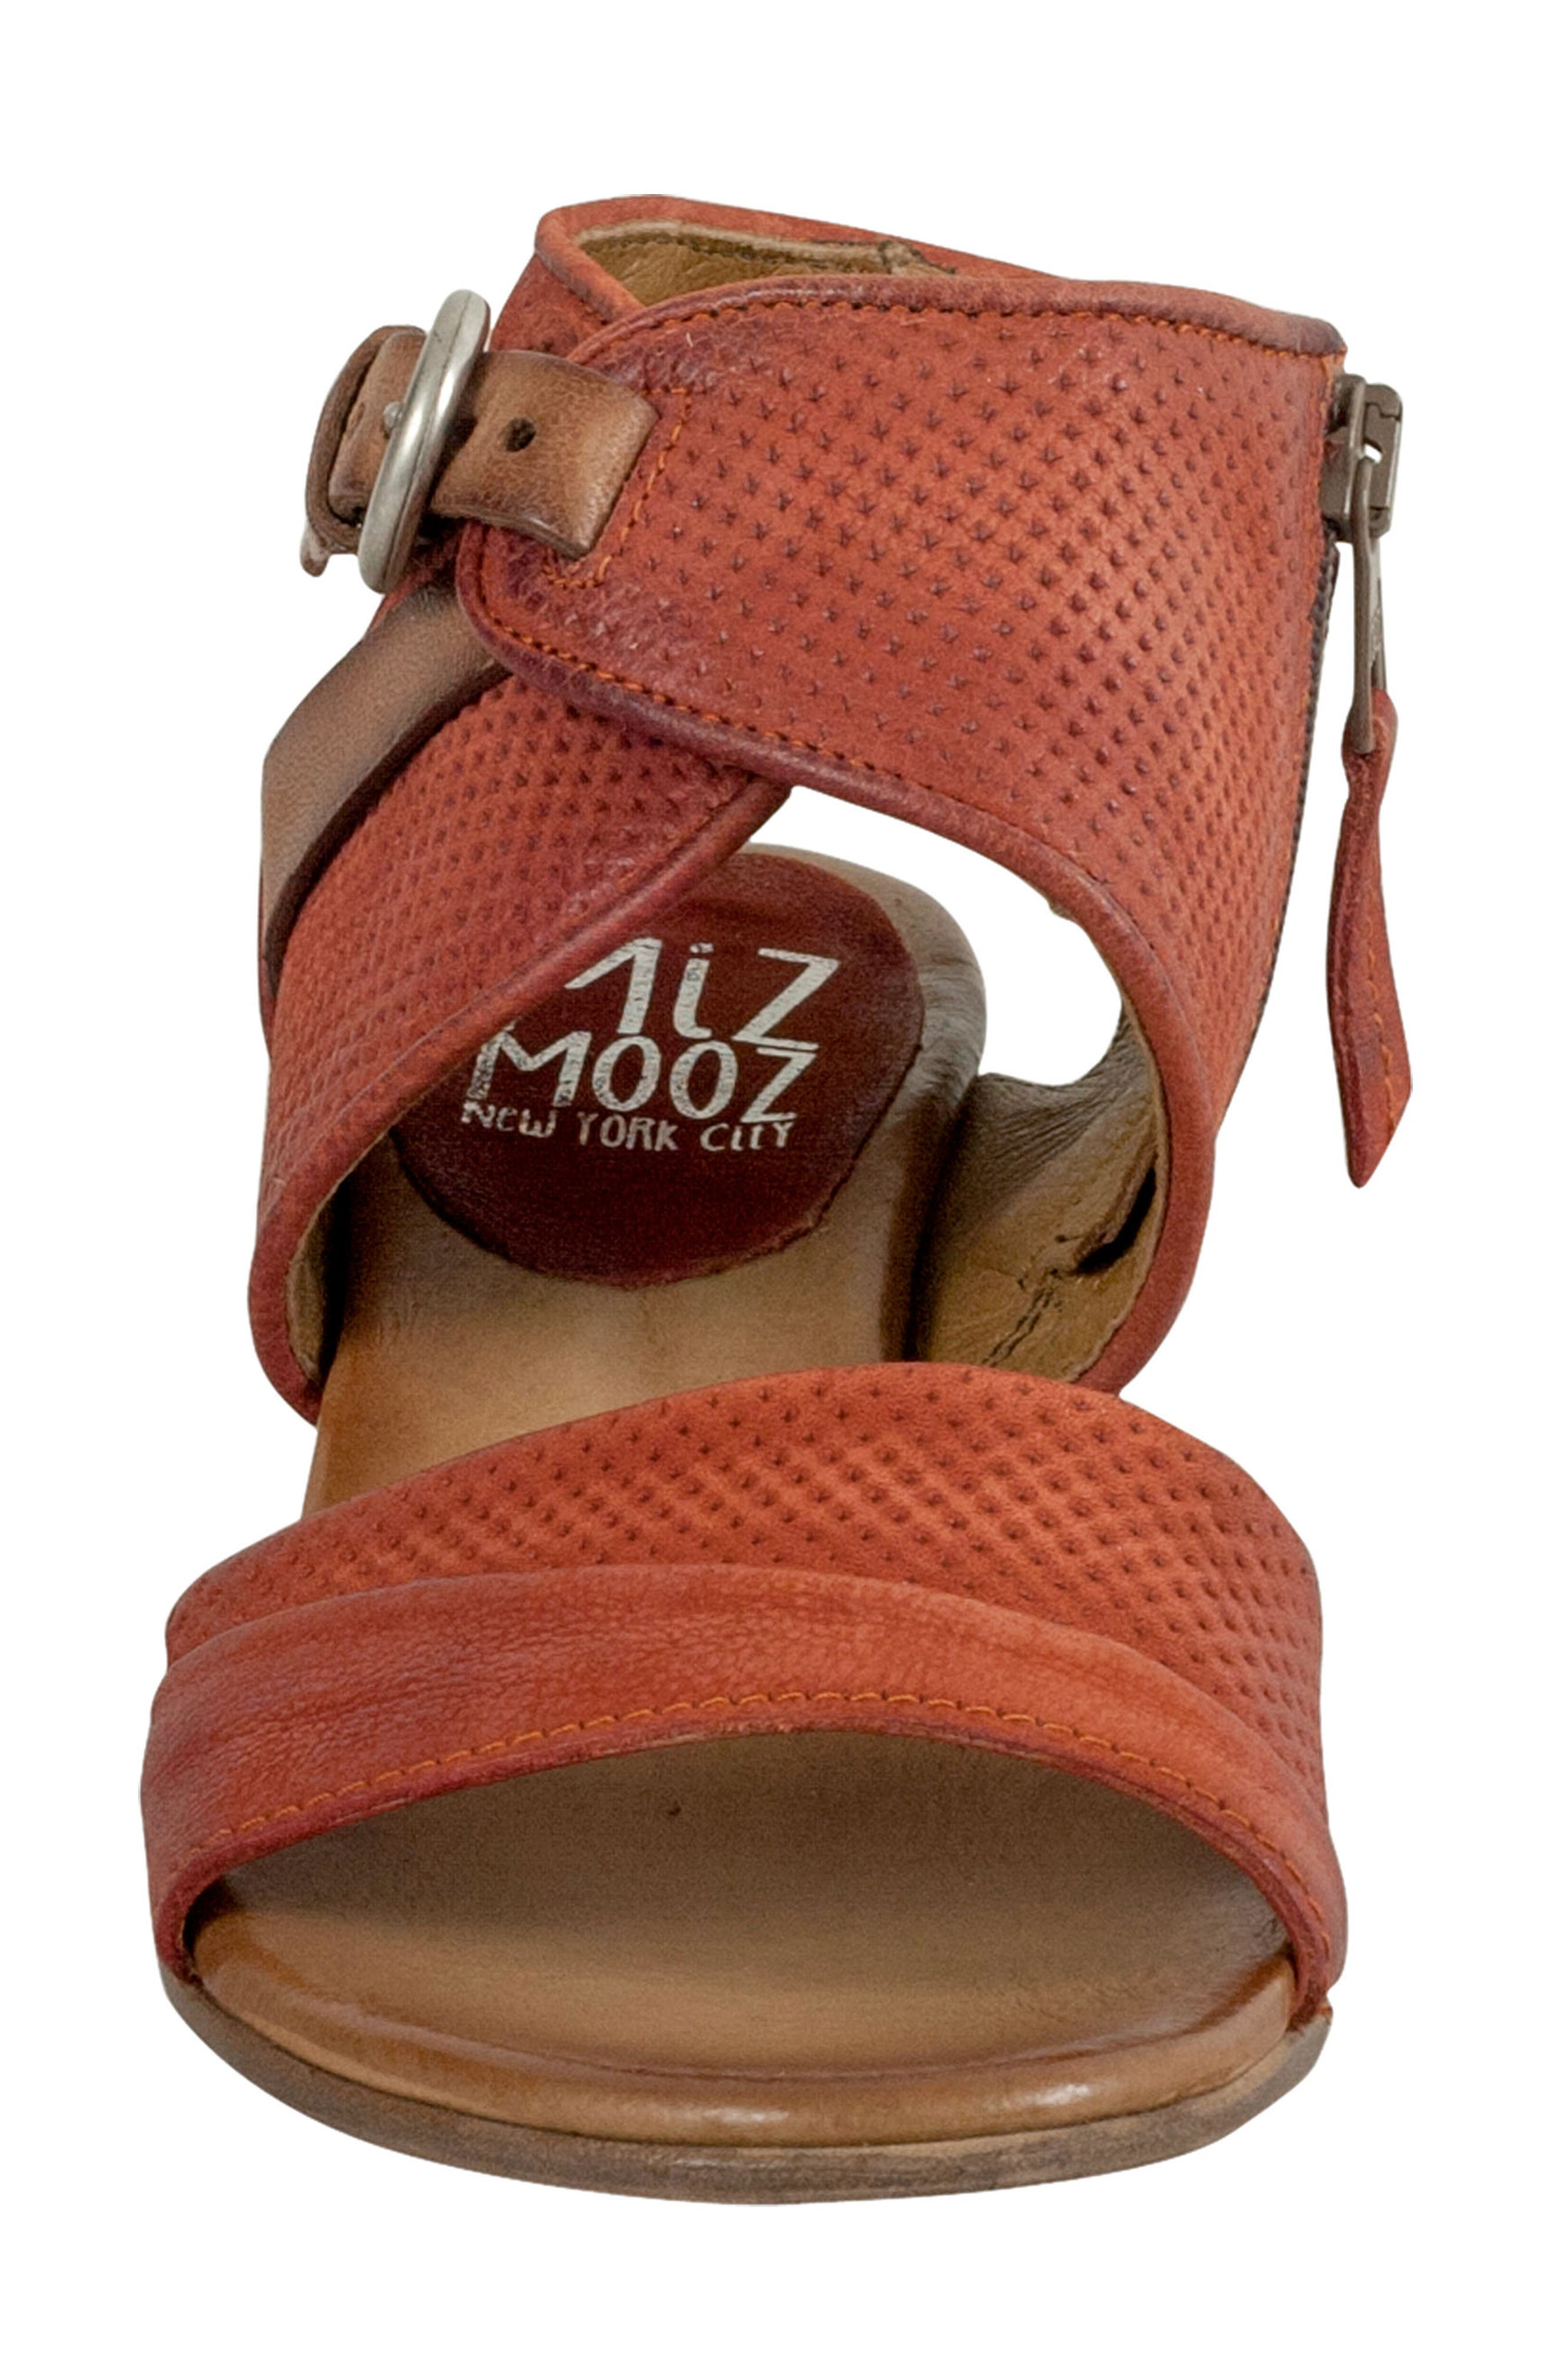 Chatham Textured Sandal,                             Alternate thumbnail 4, color,                             Rust Leather